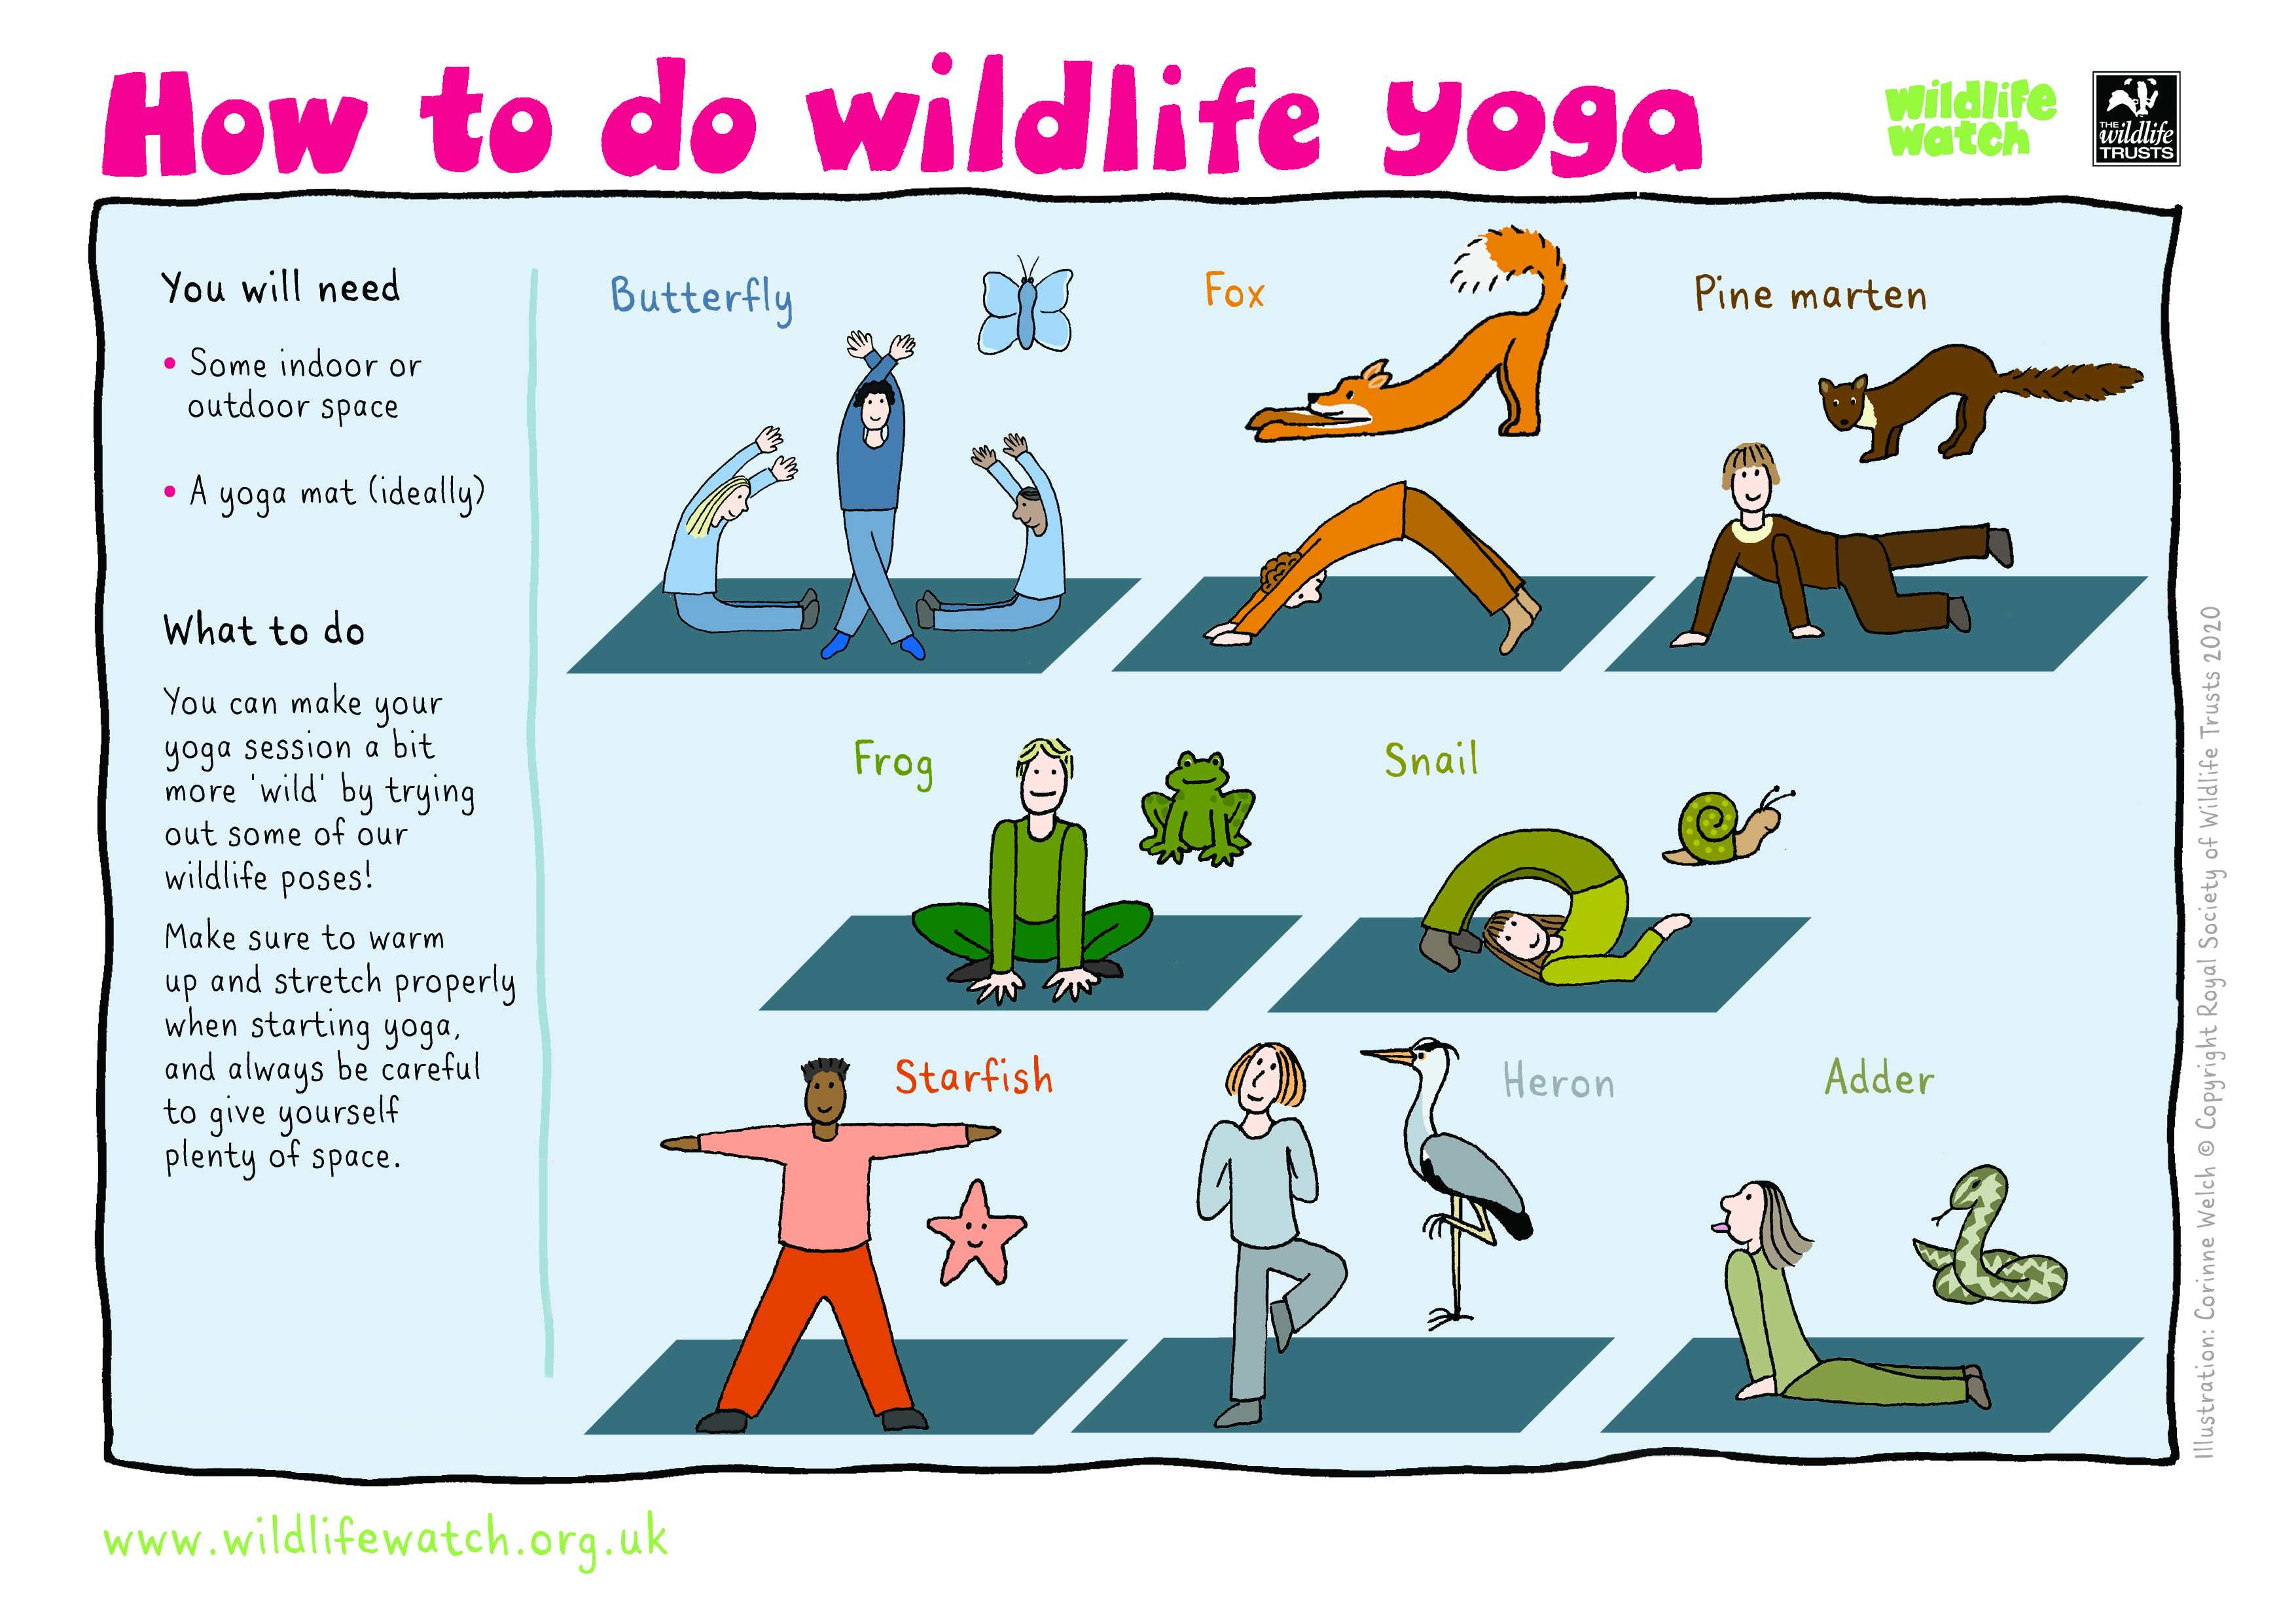 Can you stretch like a butterfly, lie like a snake or crouch like a frog?